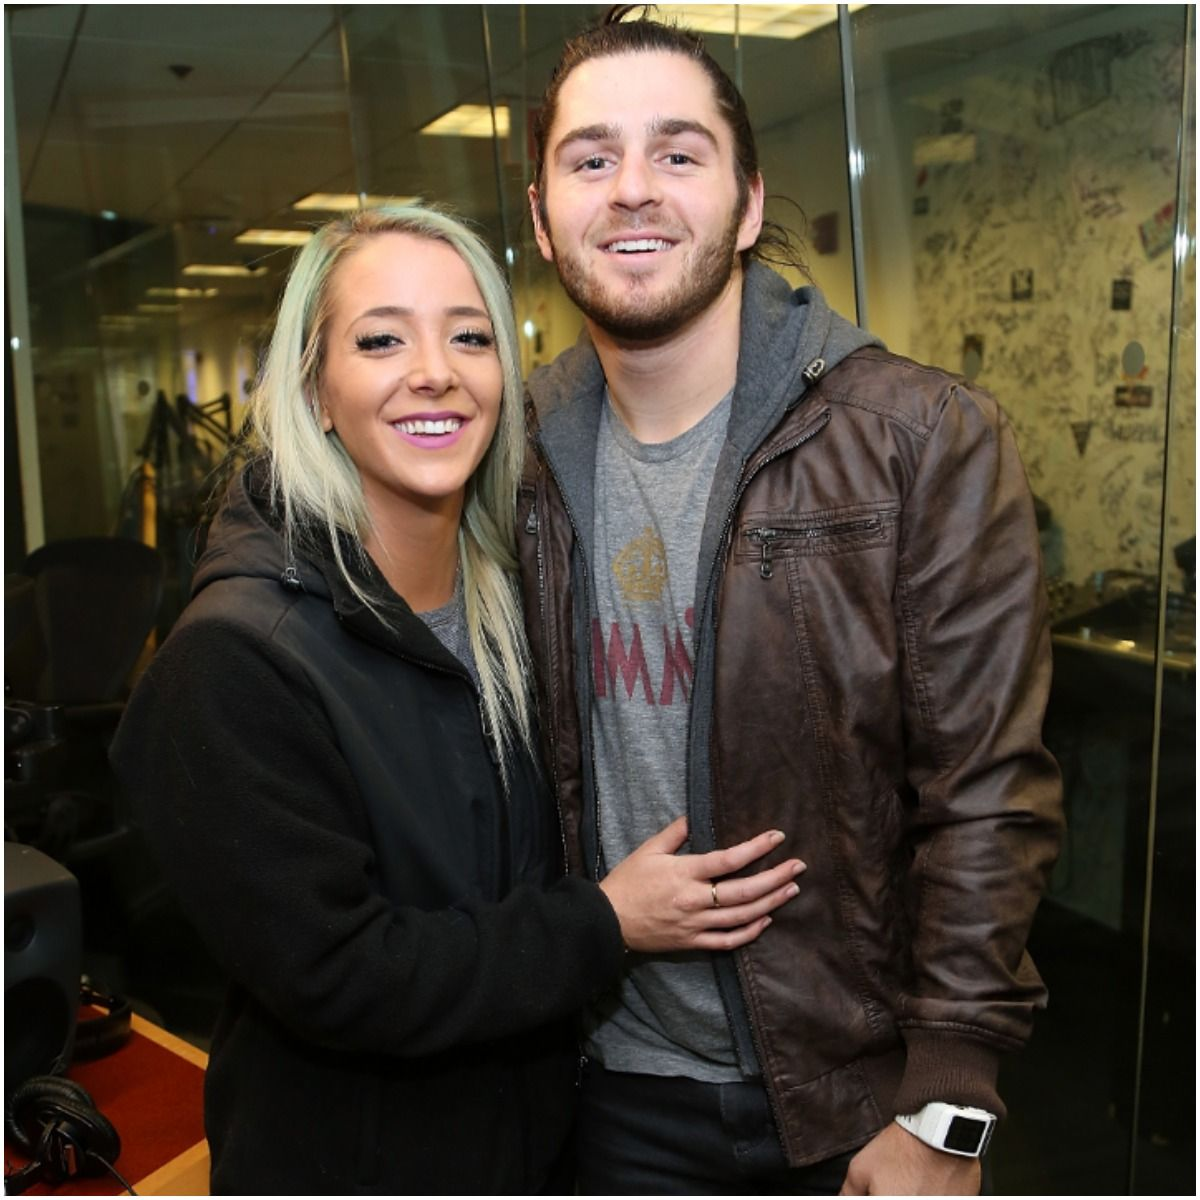 Jenna Marbles and her boyfriend